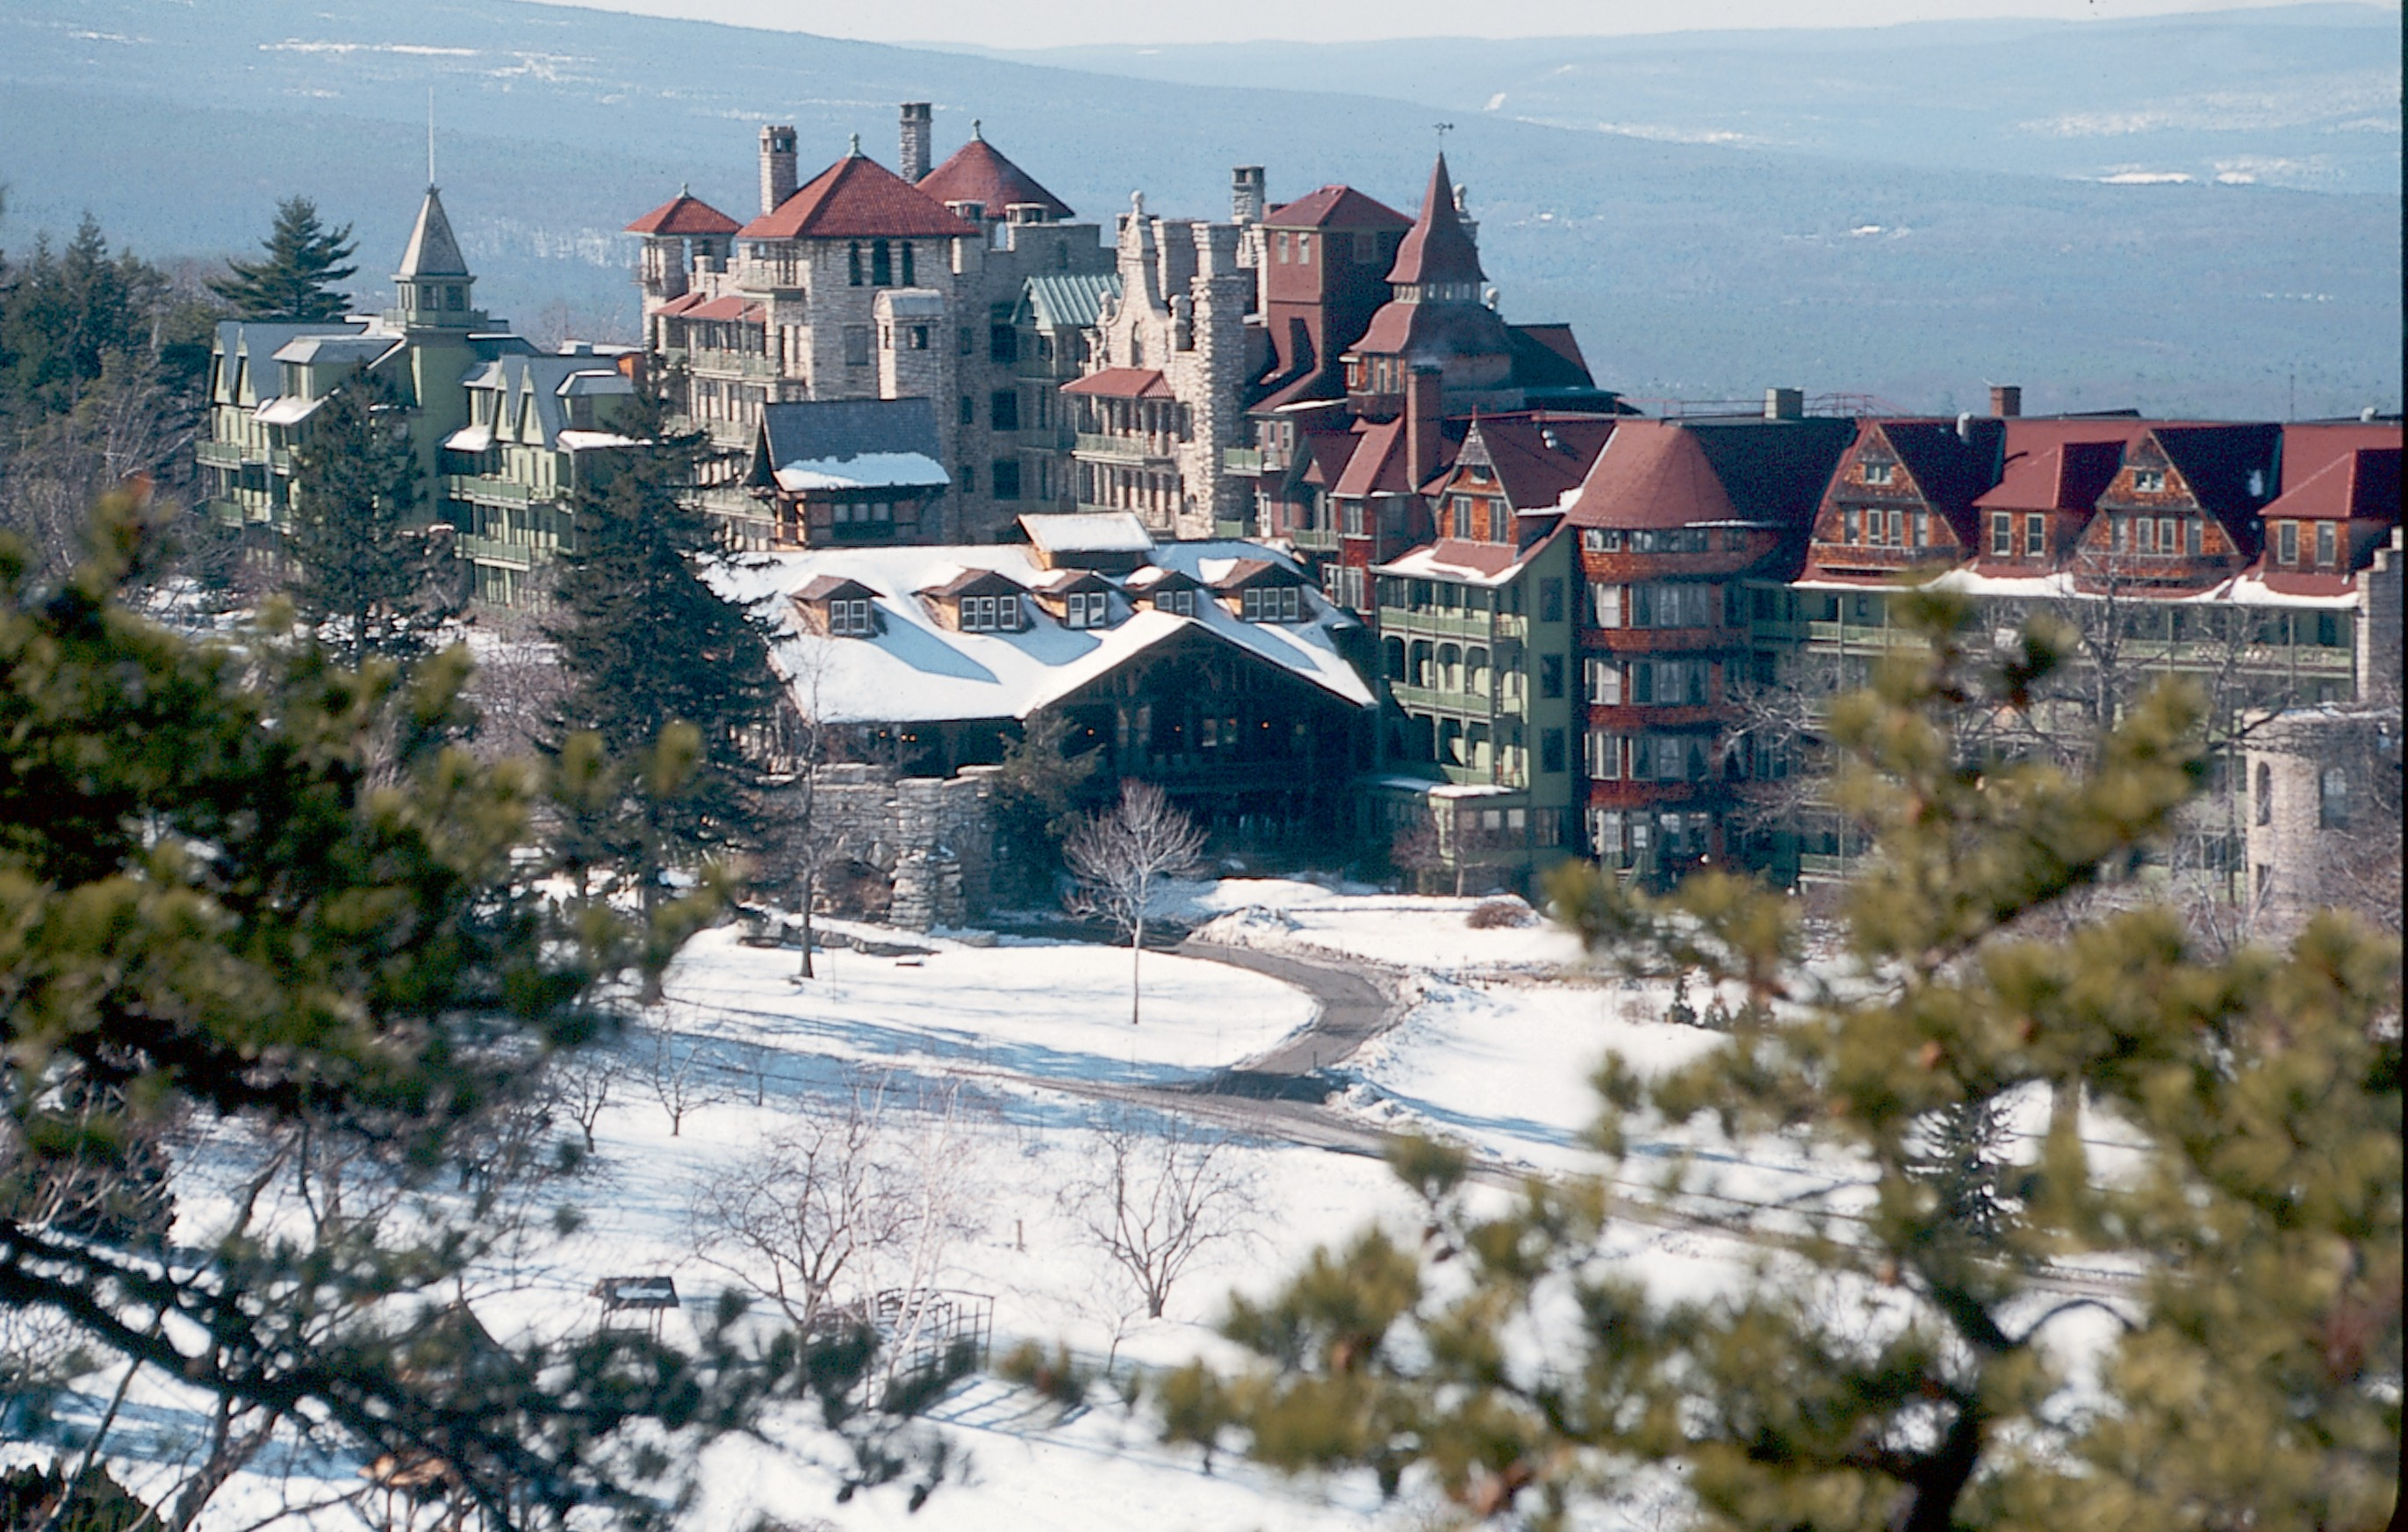 Mohonk mountain house archives everett potter 39 s travel for House mountain